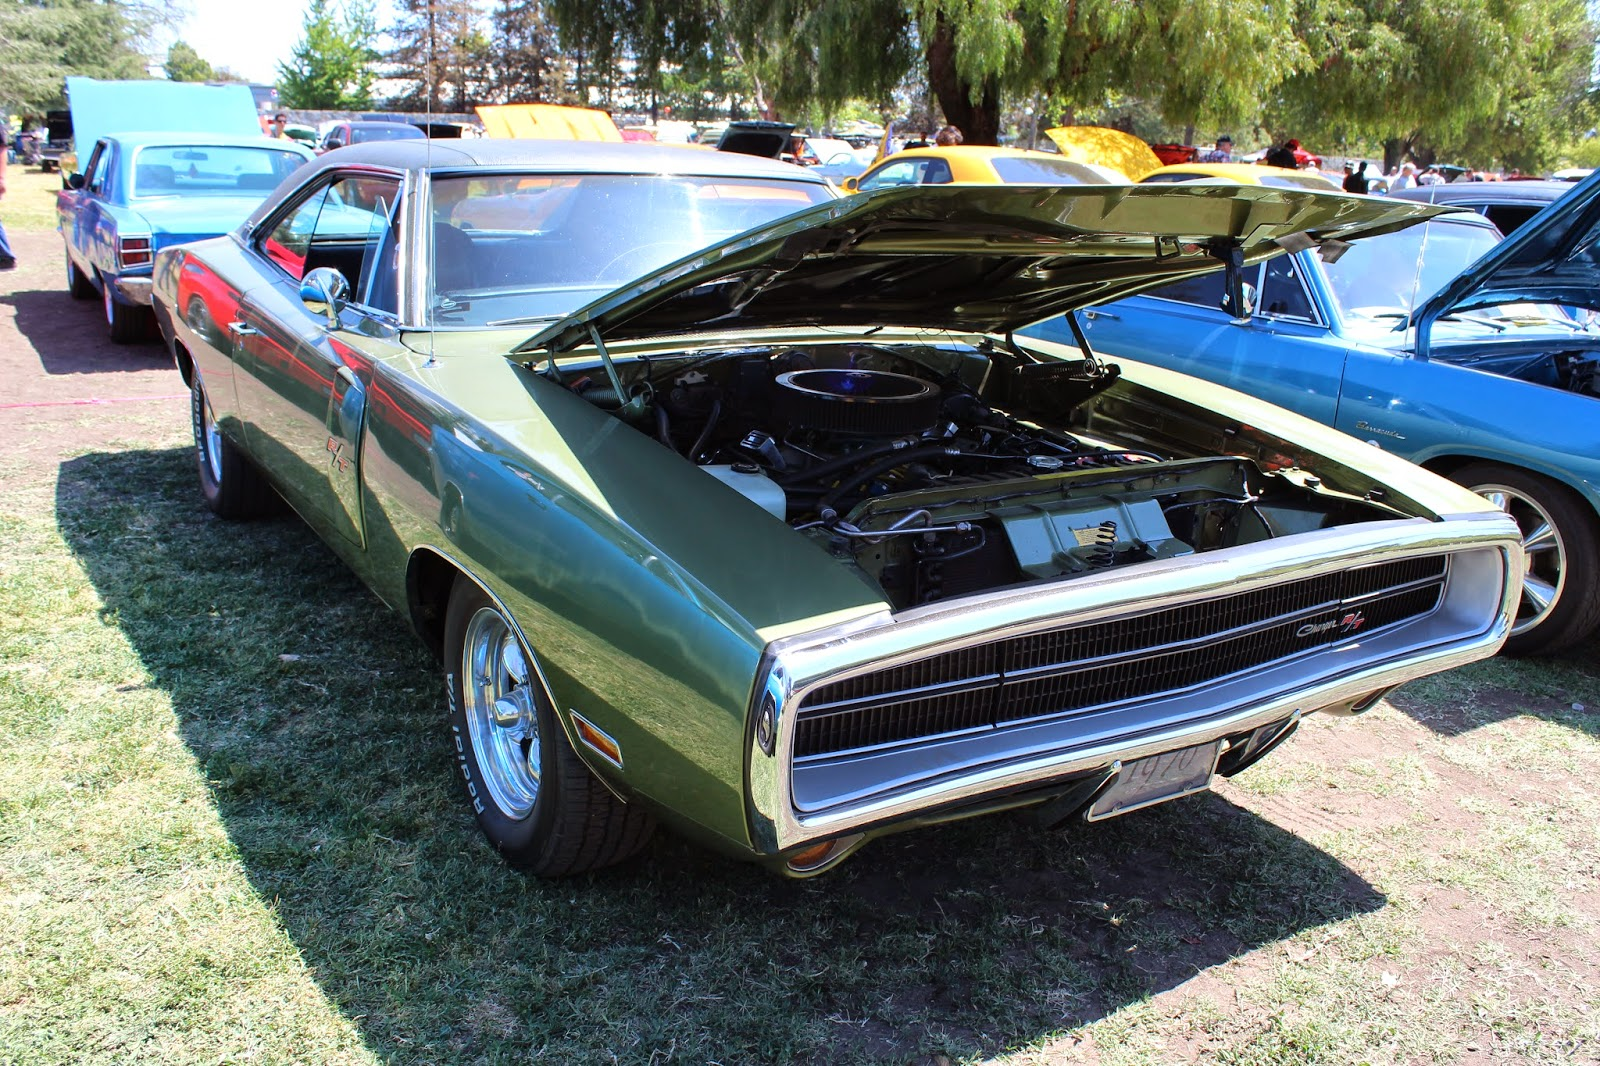 Covering Classic Cars : CPW\'s Mopar Spring Fling 2014 Photo Coverage